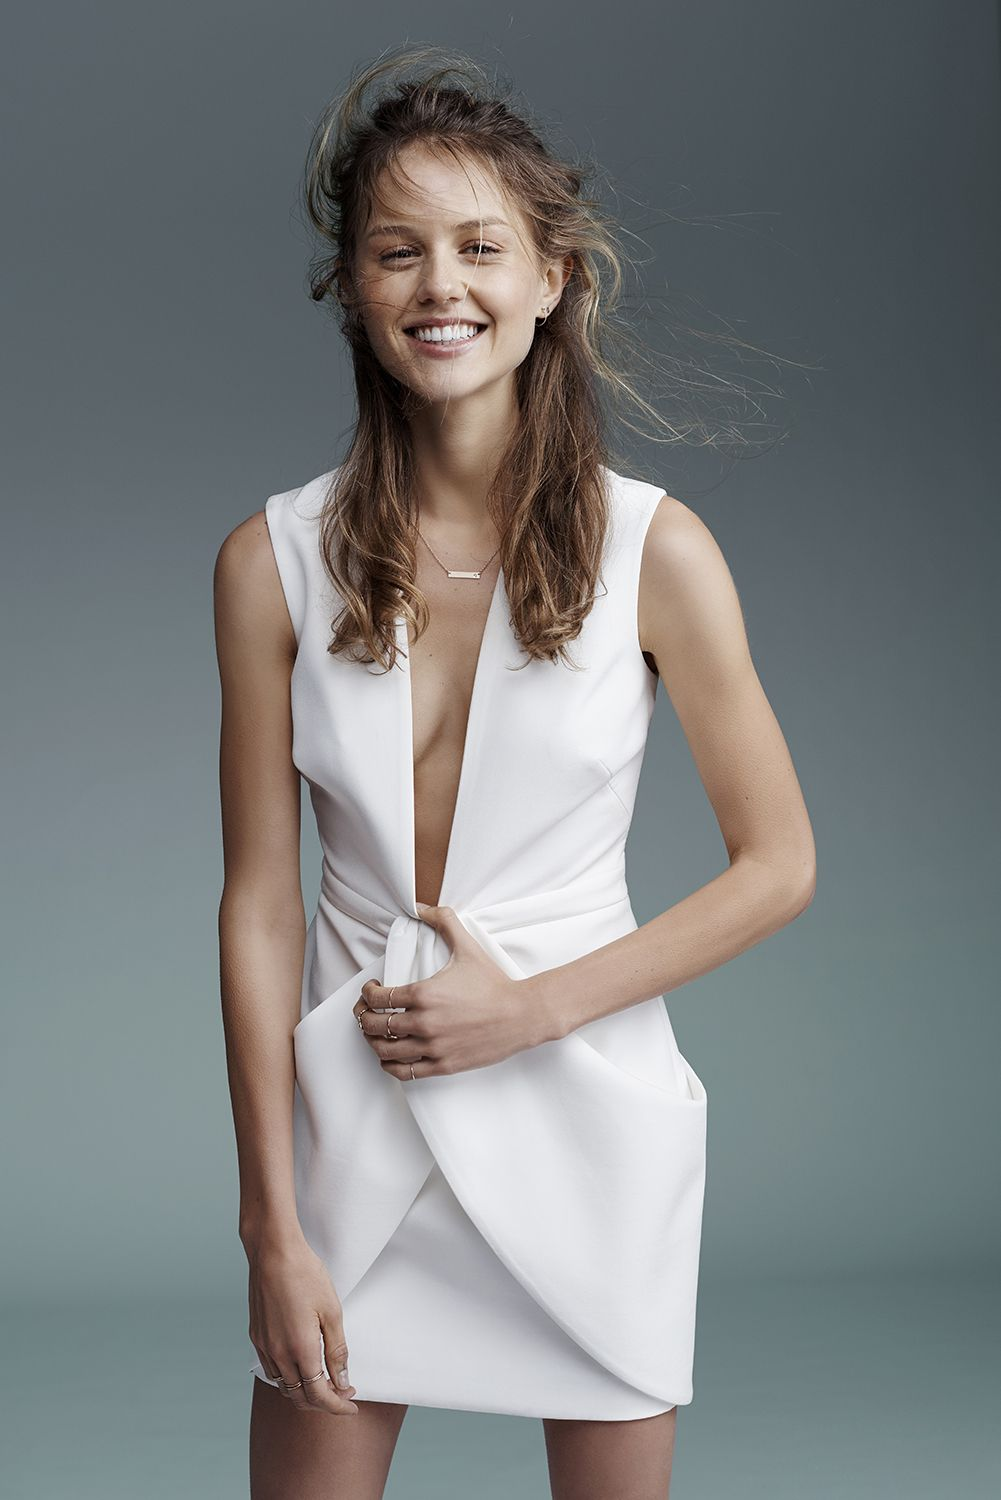 Isabelle Cornish nudes (82 pictures), images Sexy, Instagram, bra 2018